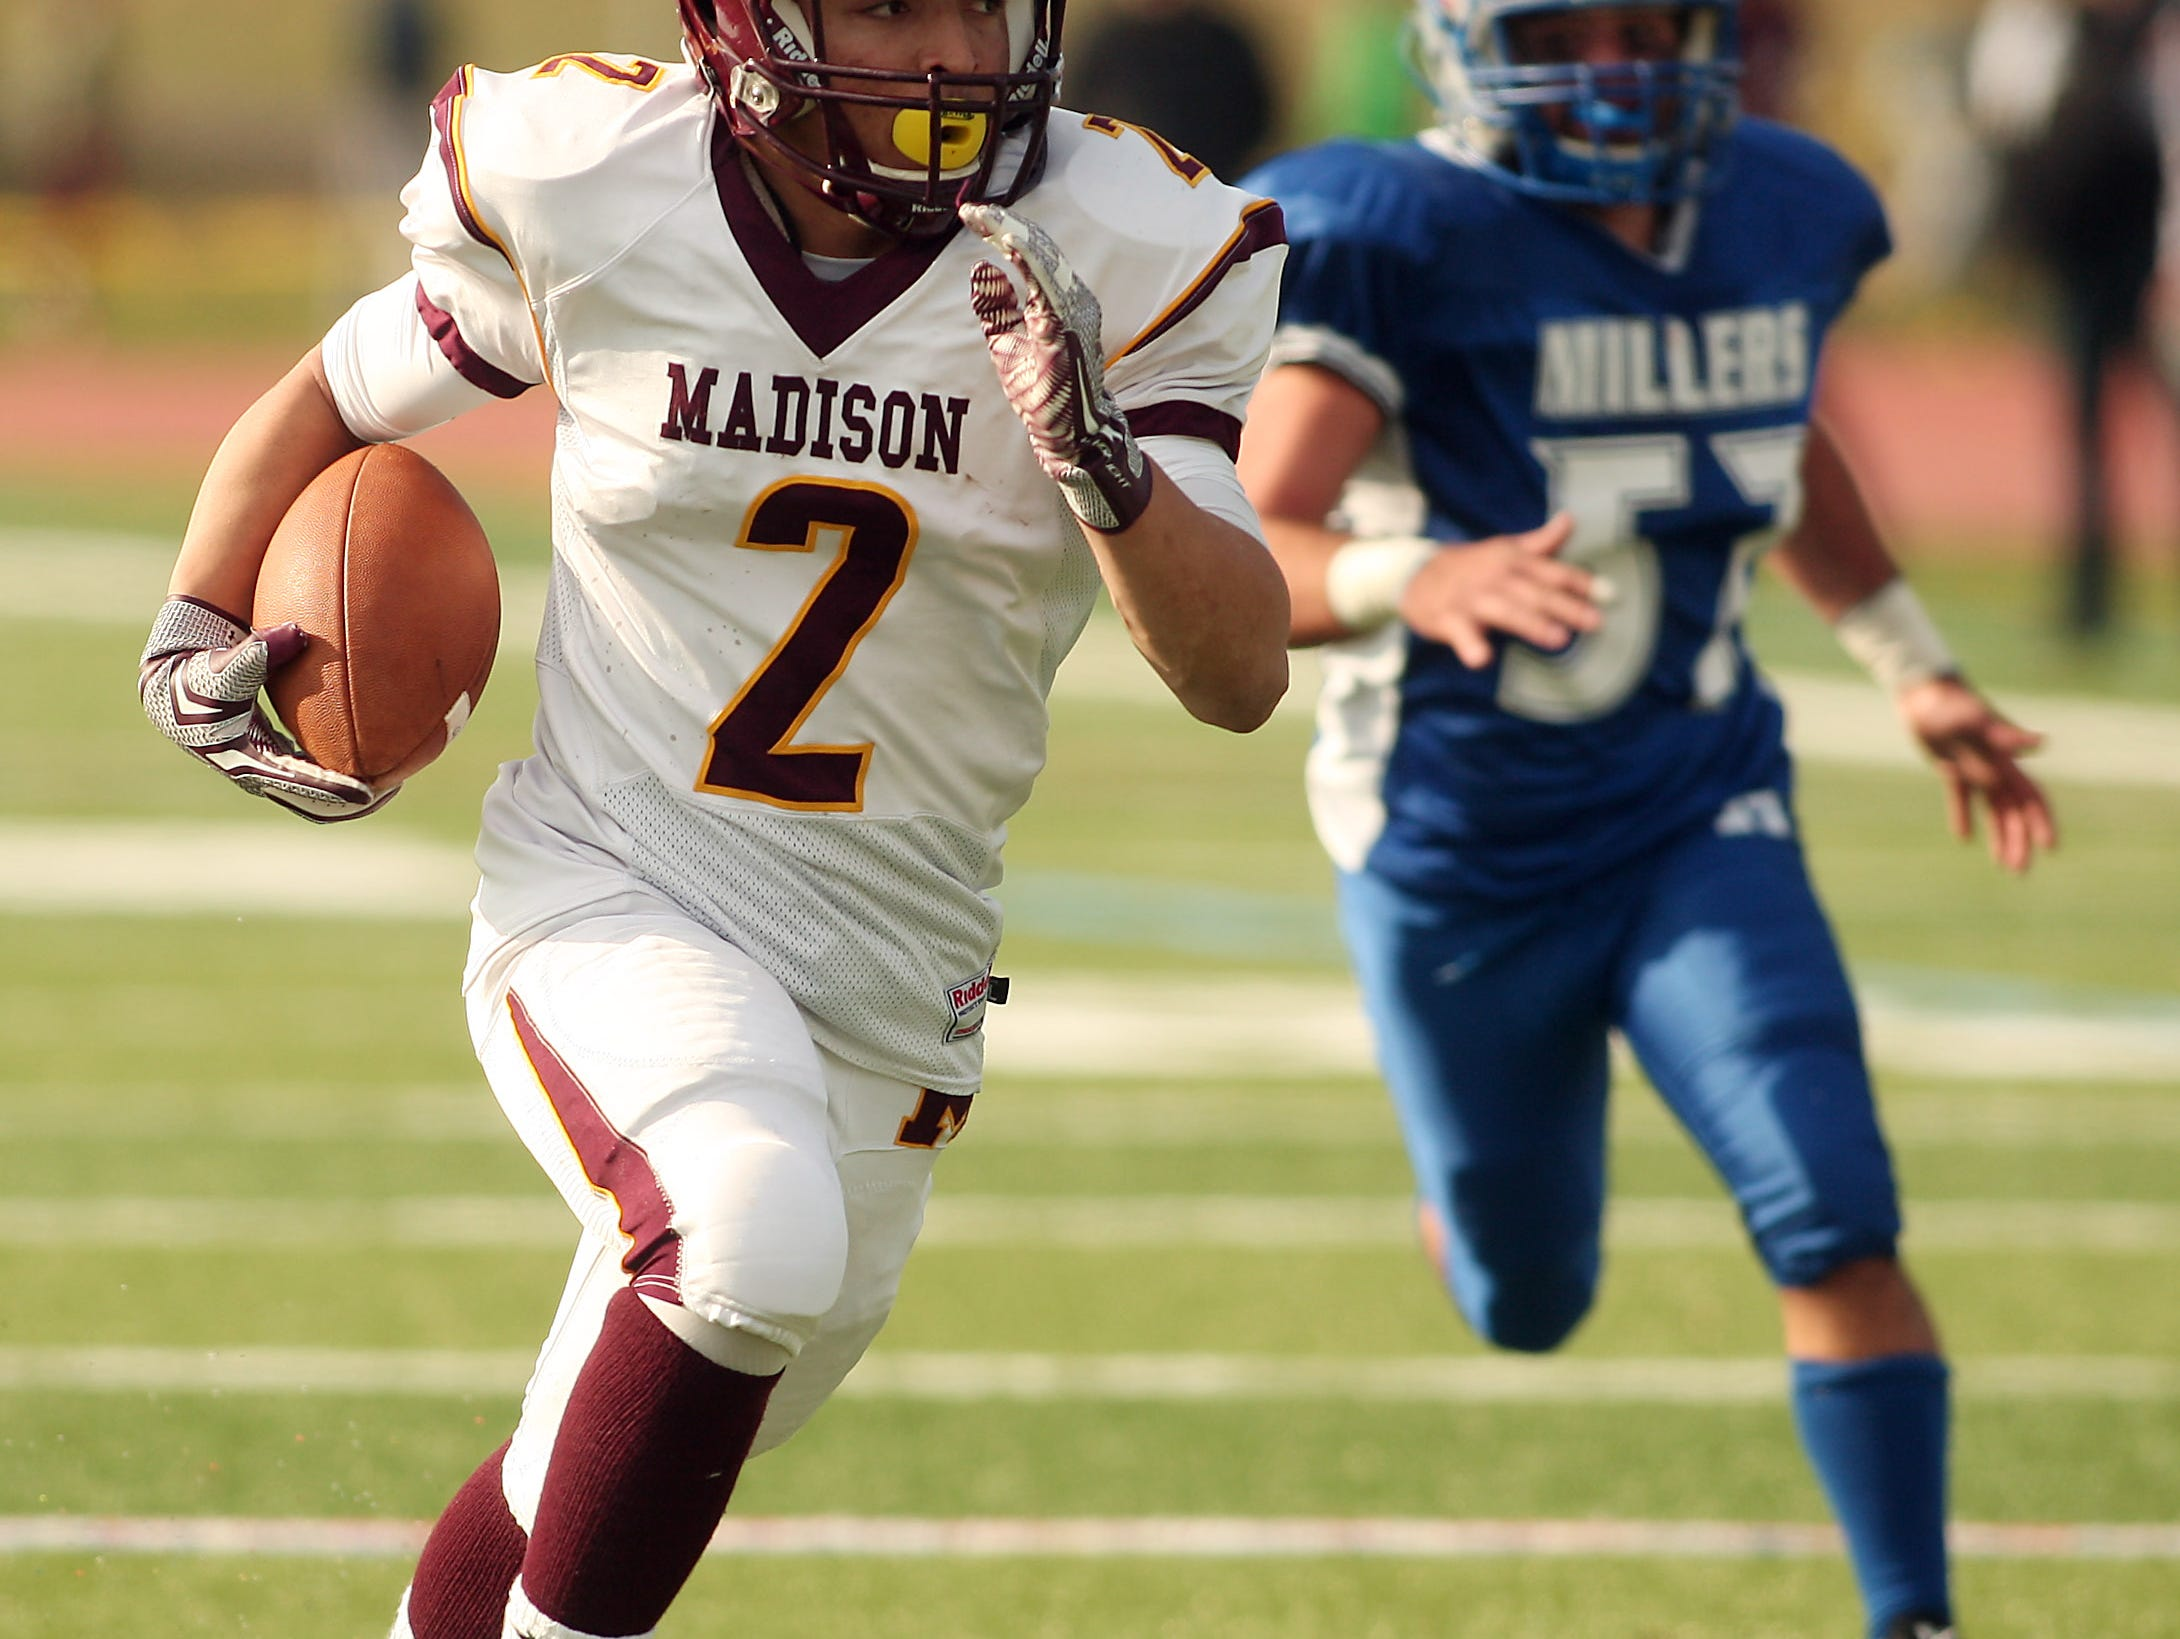 Madison receiver Joe Mobley takes the ball 39 yards for a touchdown at the end of the first half vs. Millburn during the 83rd renewal of their Thanksgiving Day rivalry Thursday morning in Millburn. November 26, 2015, Millburn., NJ.